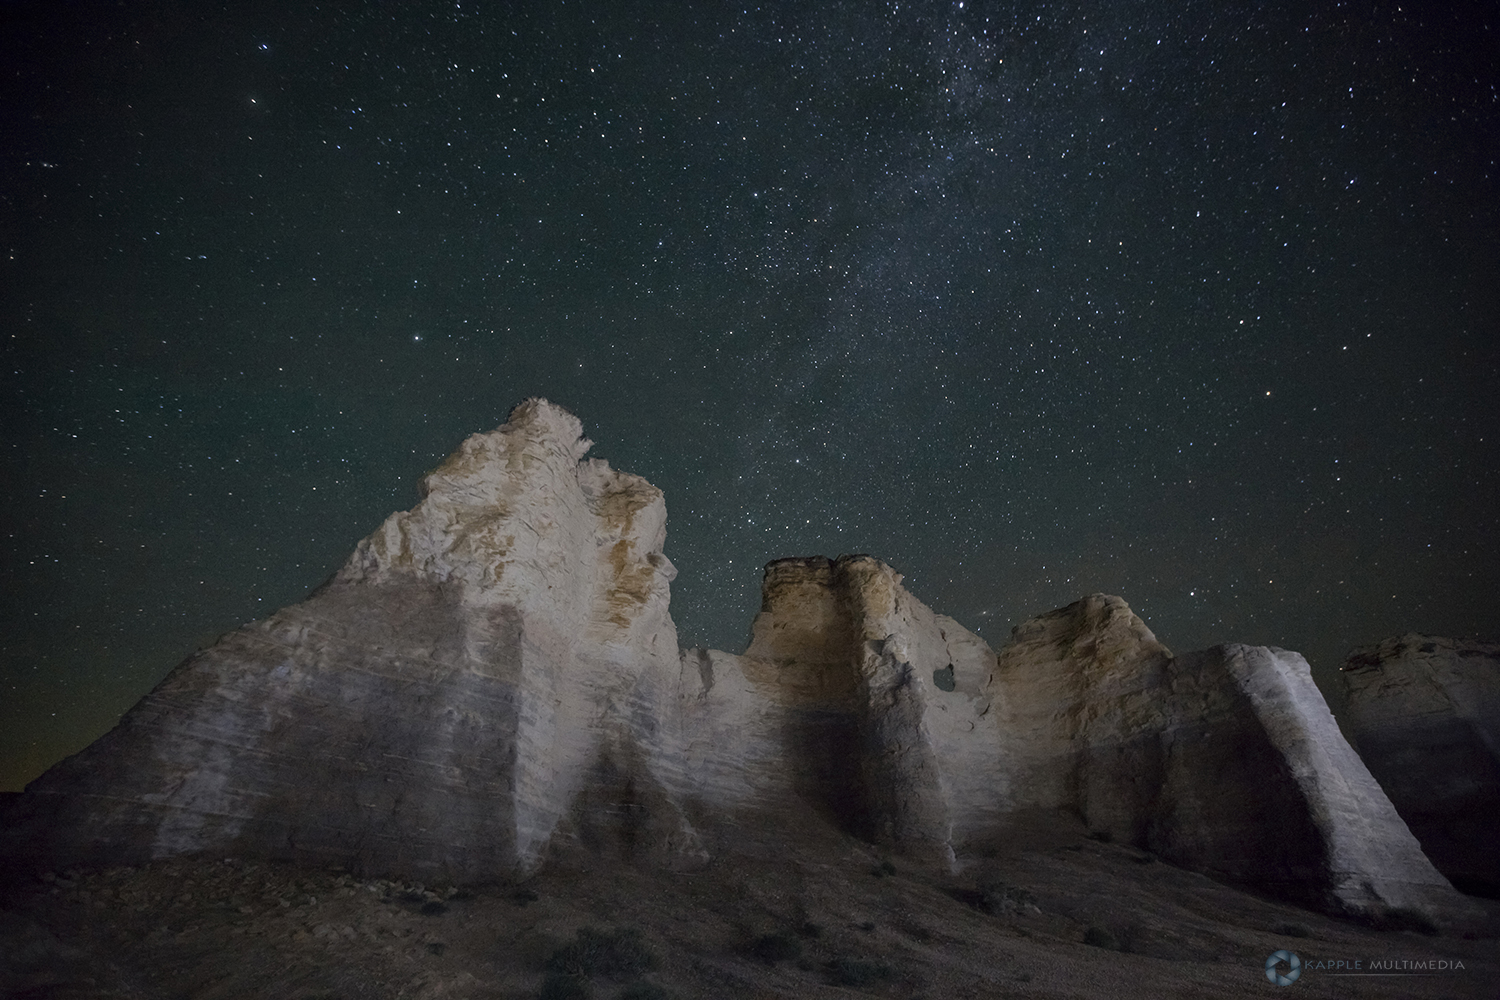 The Chalk Pyramids and Monument Rocks in Kansas